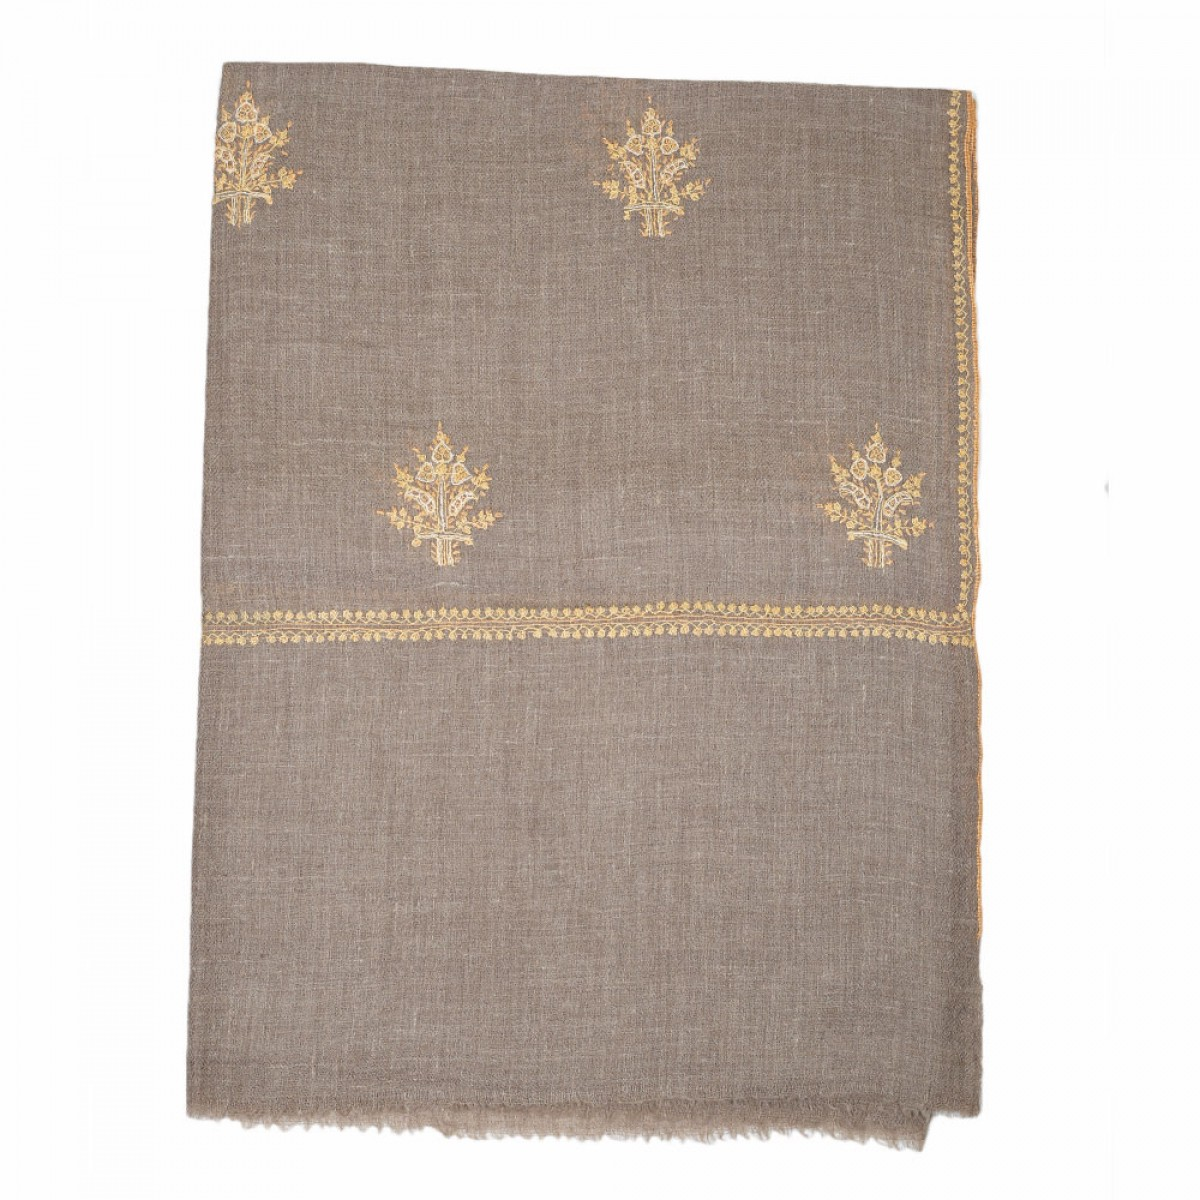 Embroidered Handloom Pashmina Stole - Natural Salmon